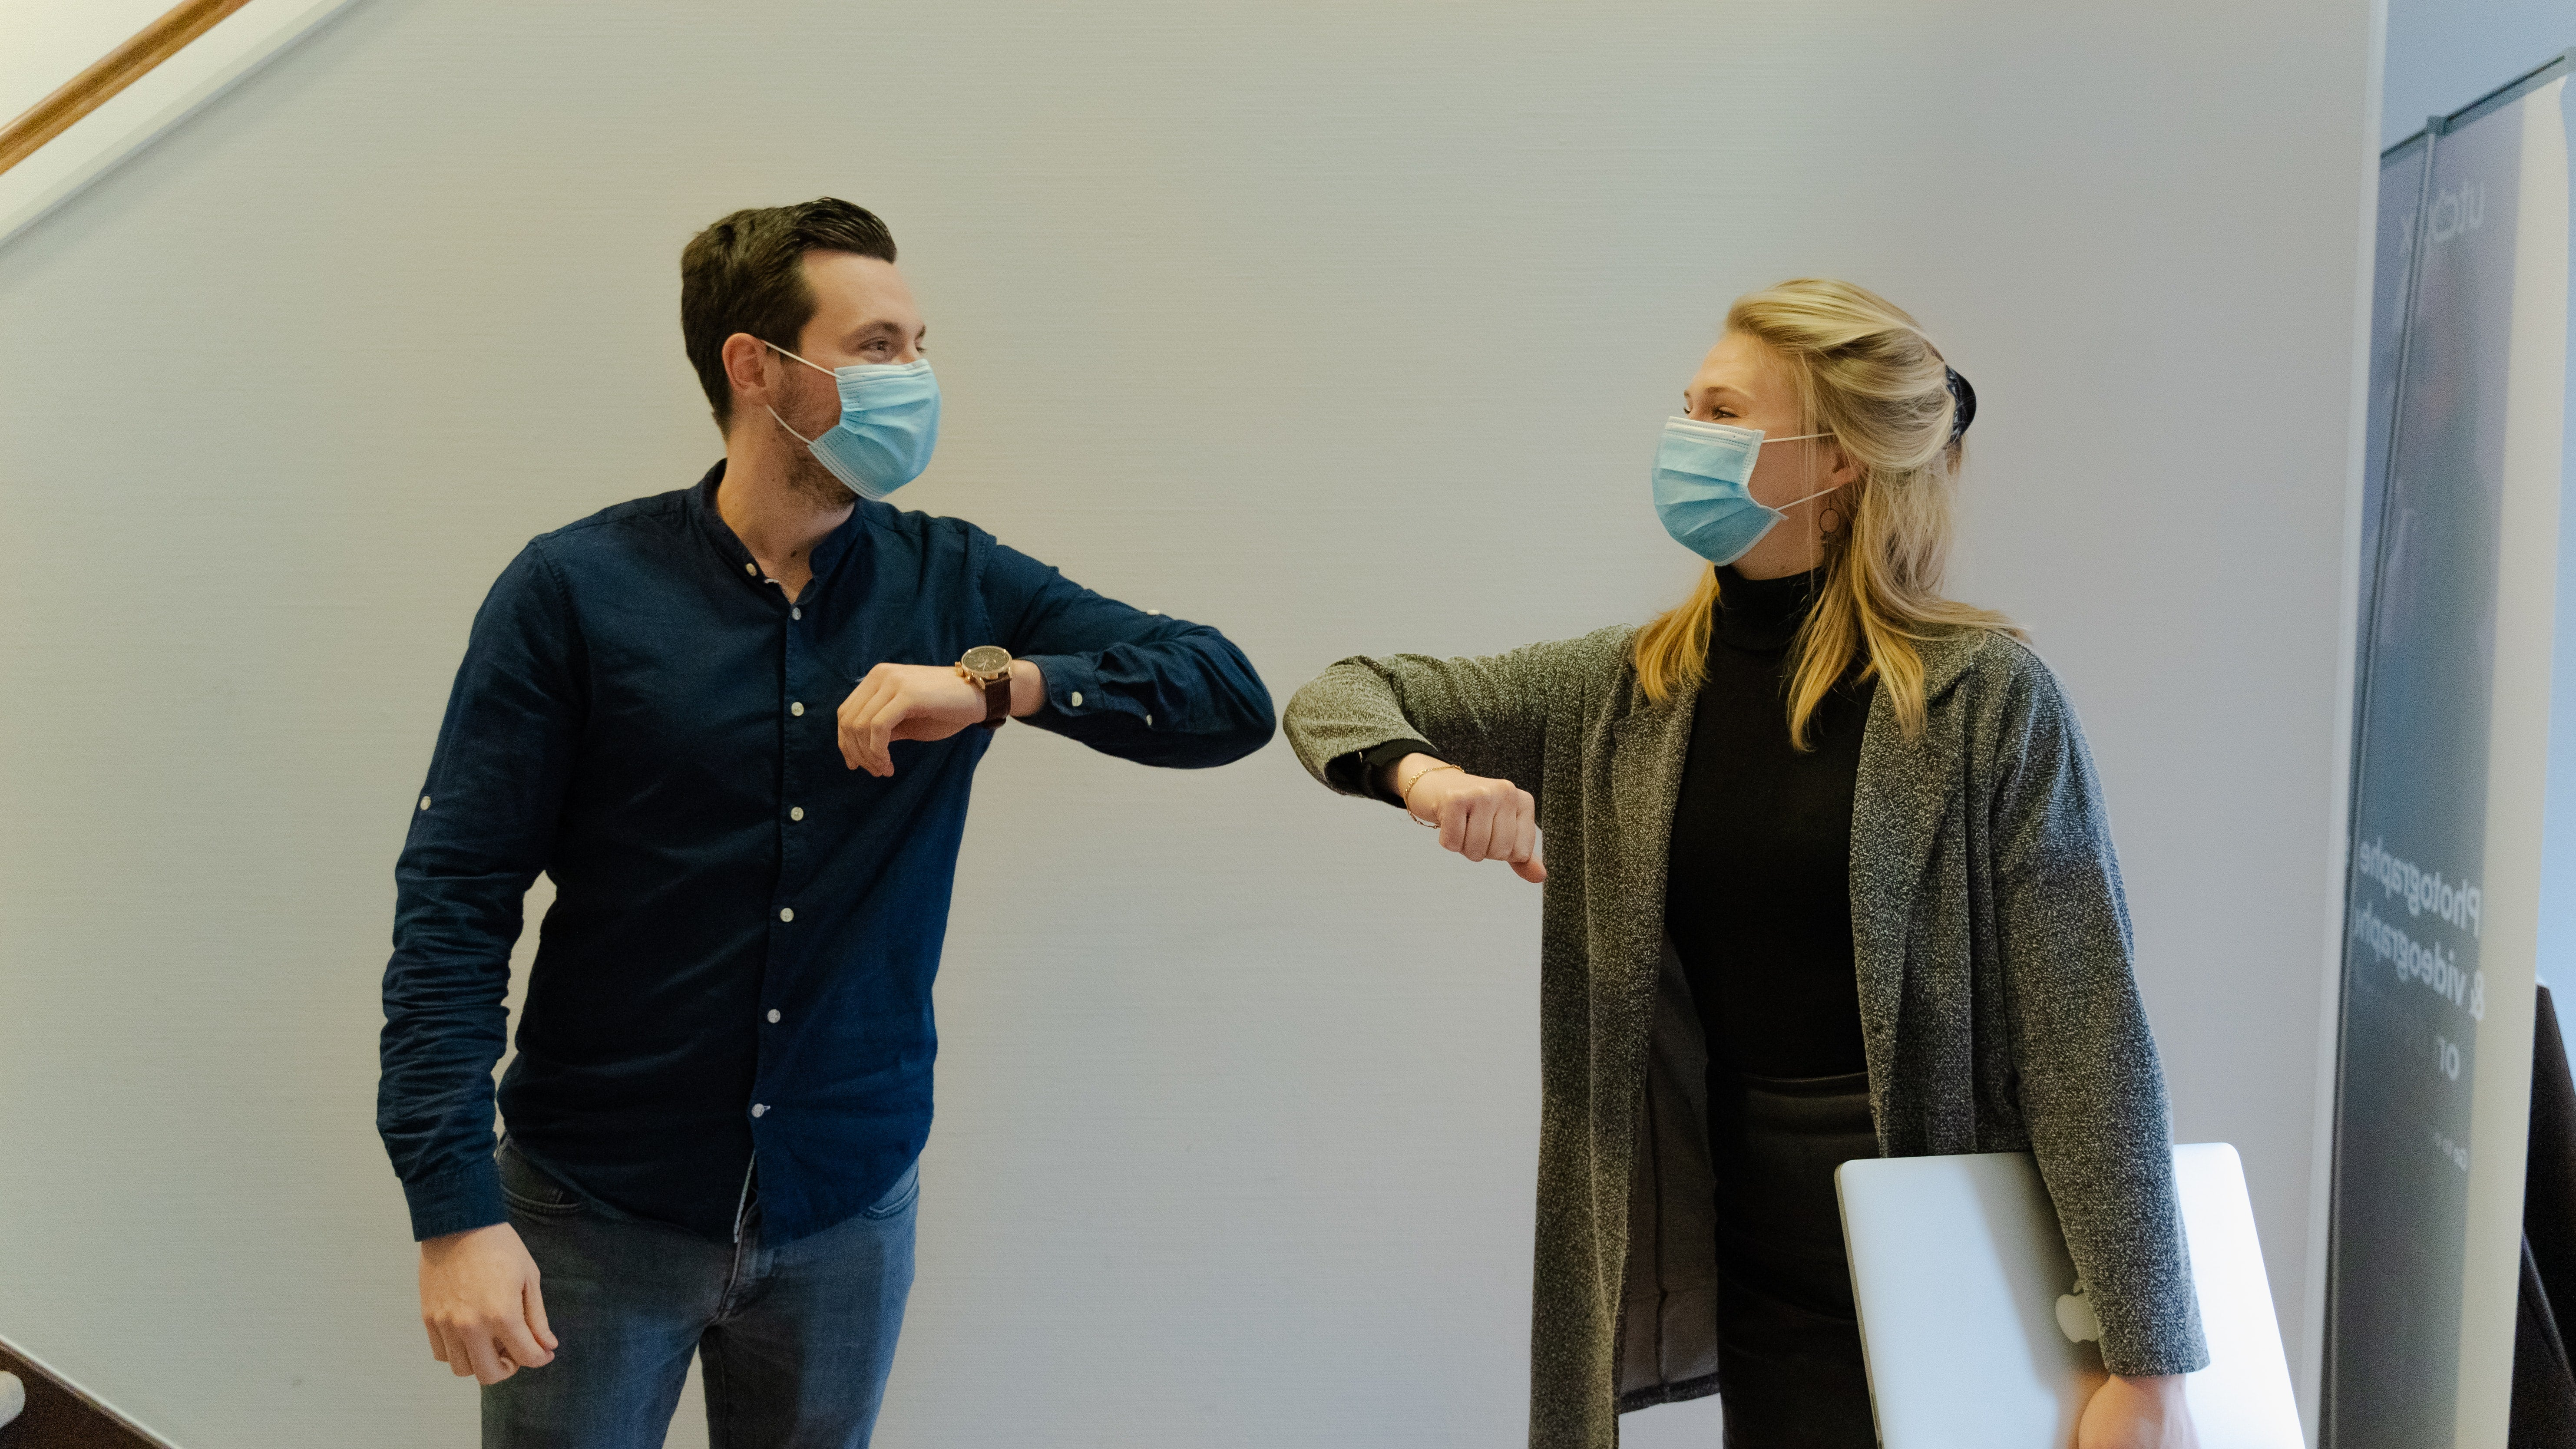 Two people in face masks doing an elbow bump